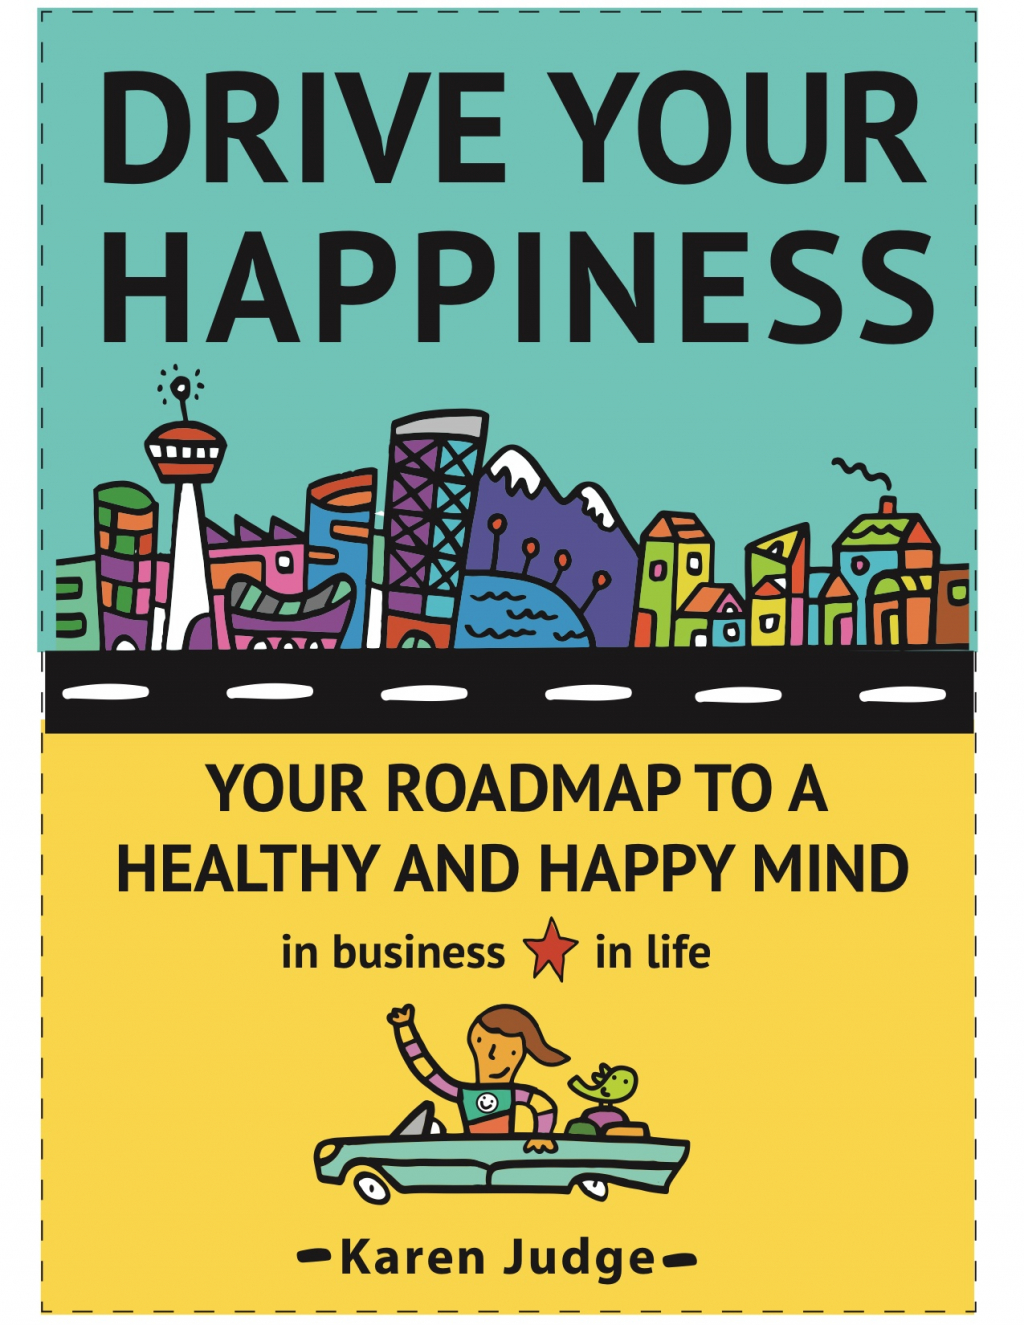 Thumbnail of: 1st edition of Drive Your Happiness - Author Karen Judge